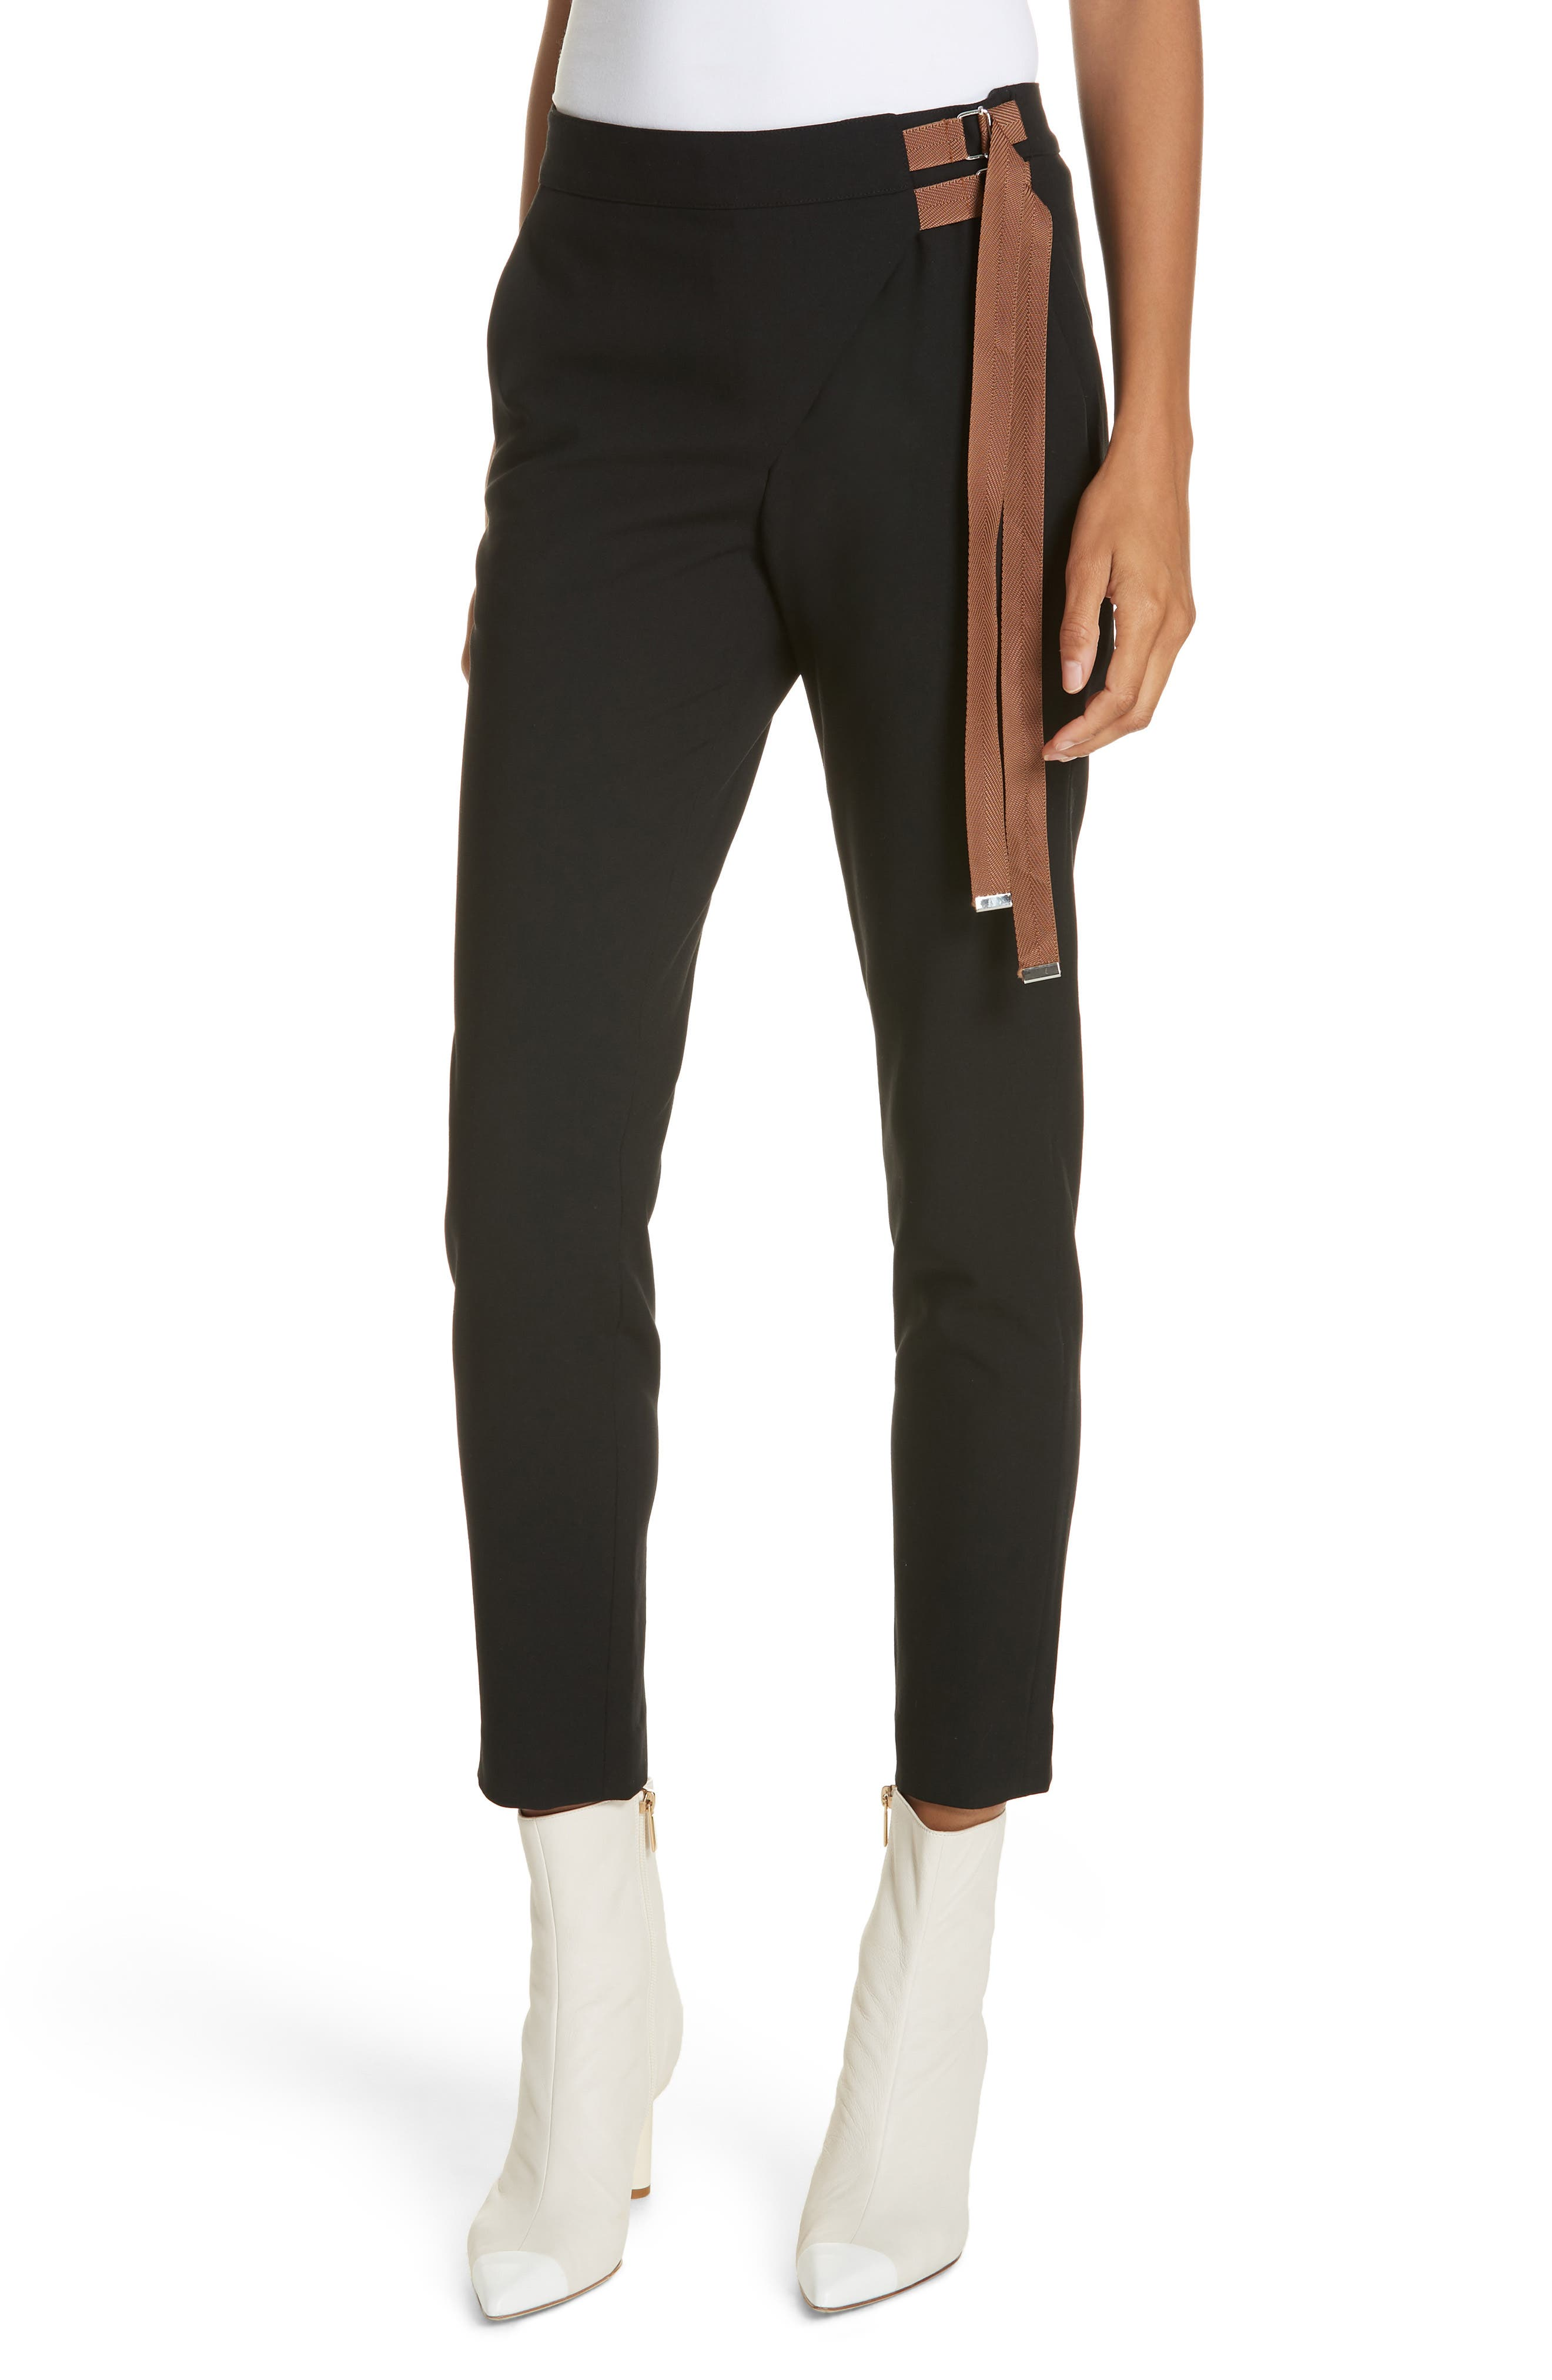 Anson Stretch Side Buckle Skinny Pants in Black